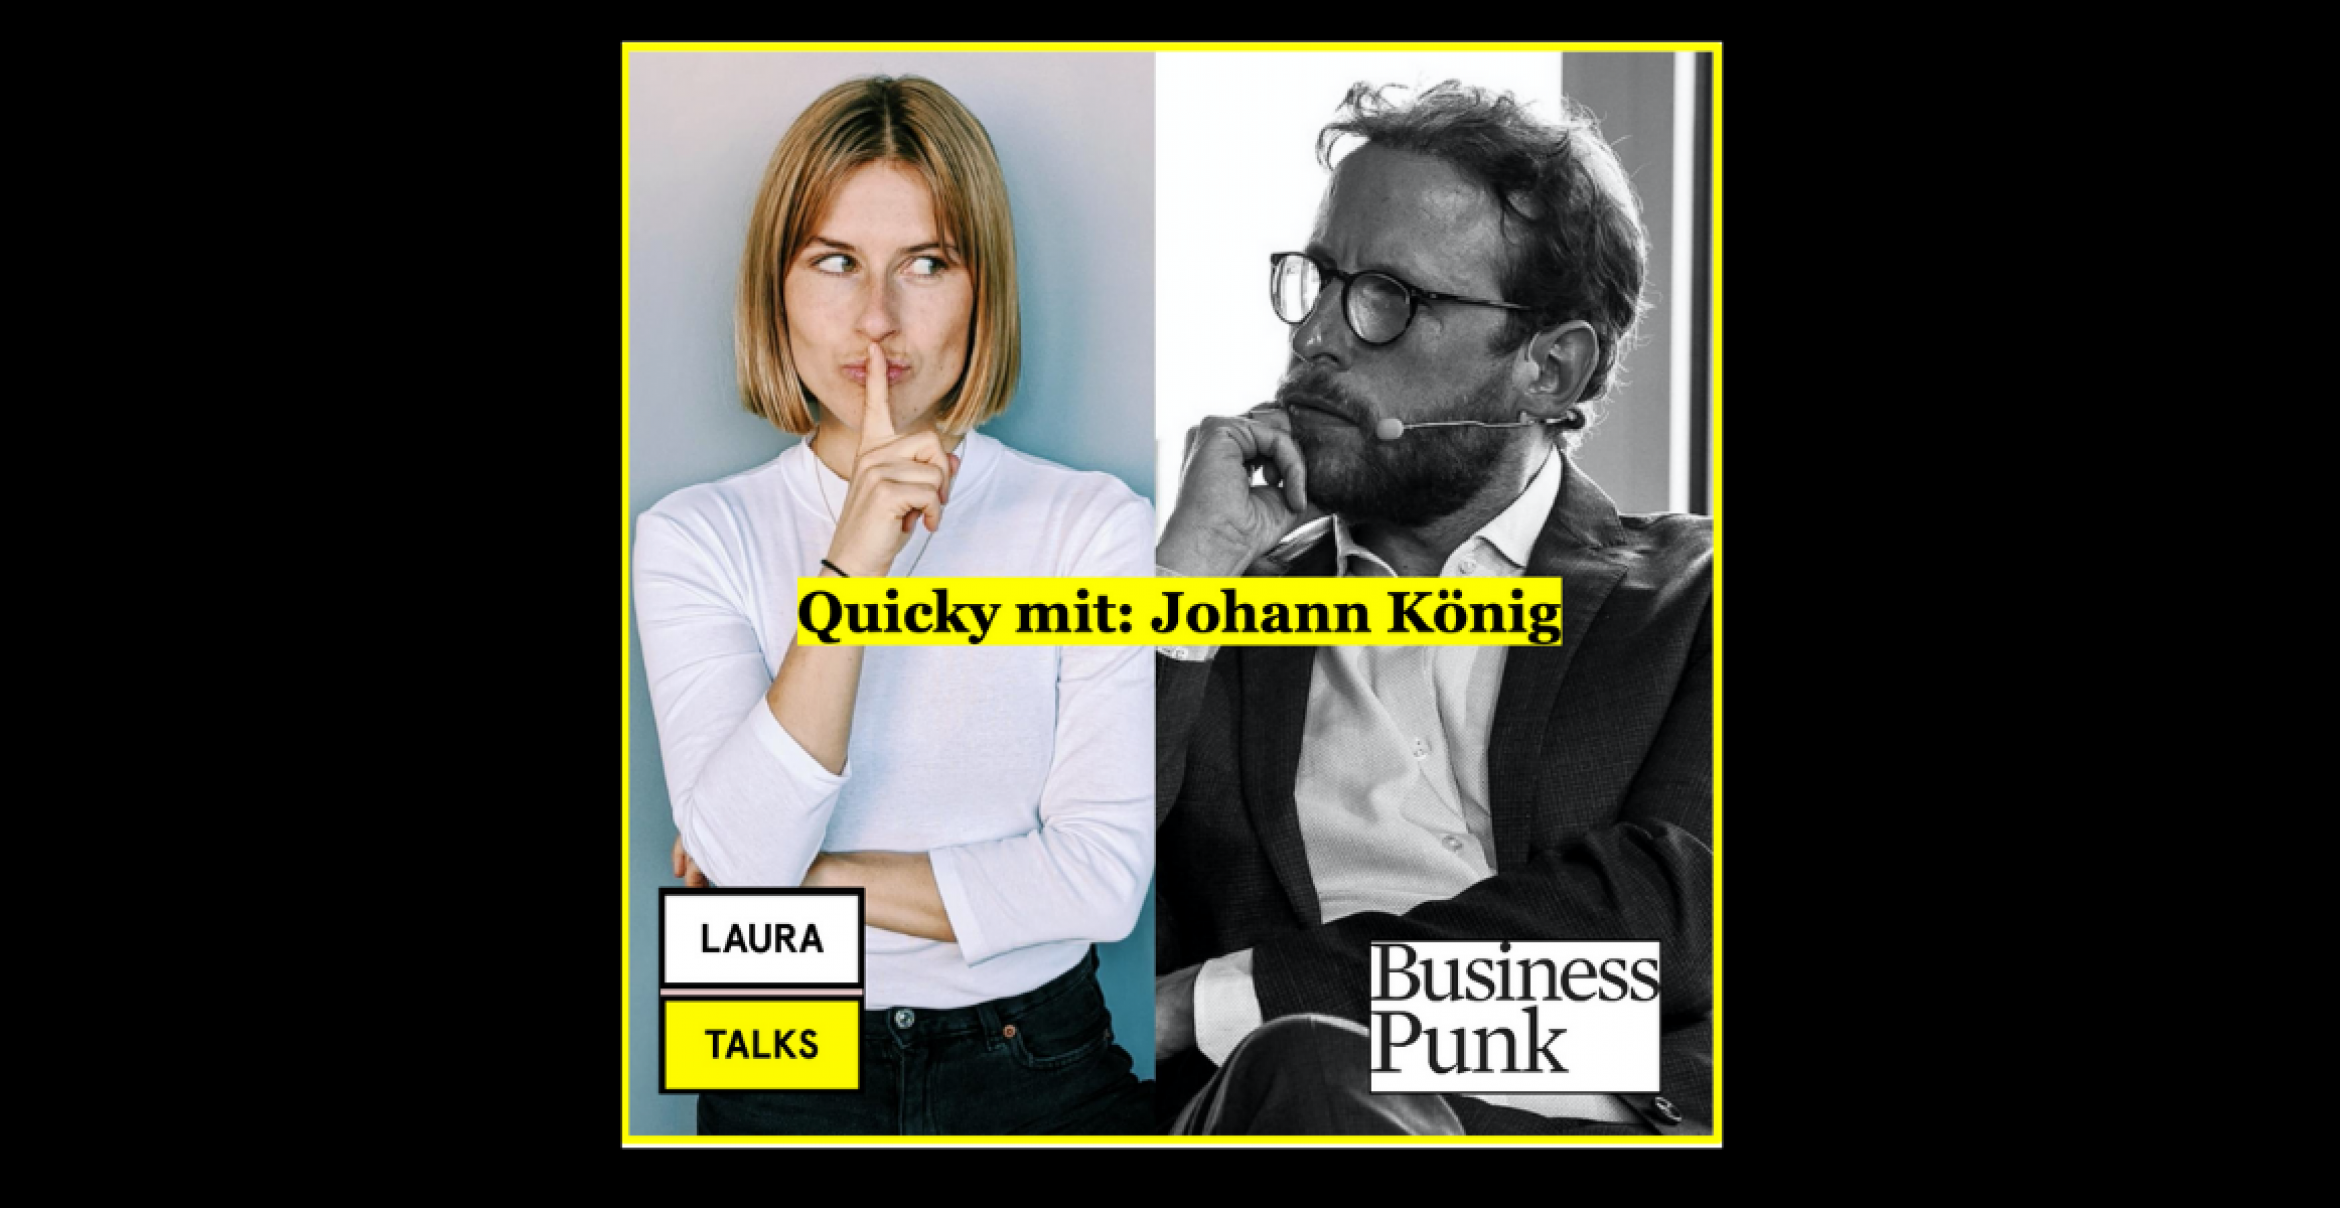 """Laura Talks"": Laura Lewandowski im Interview mit Galerist Johann König"